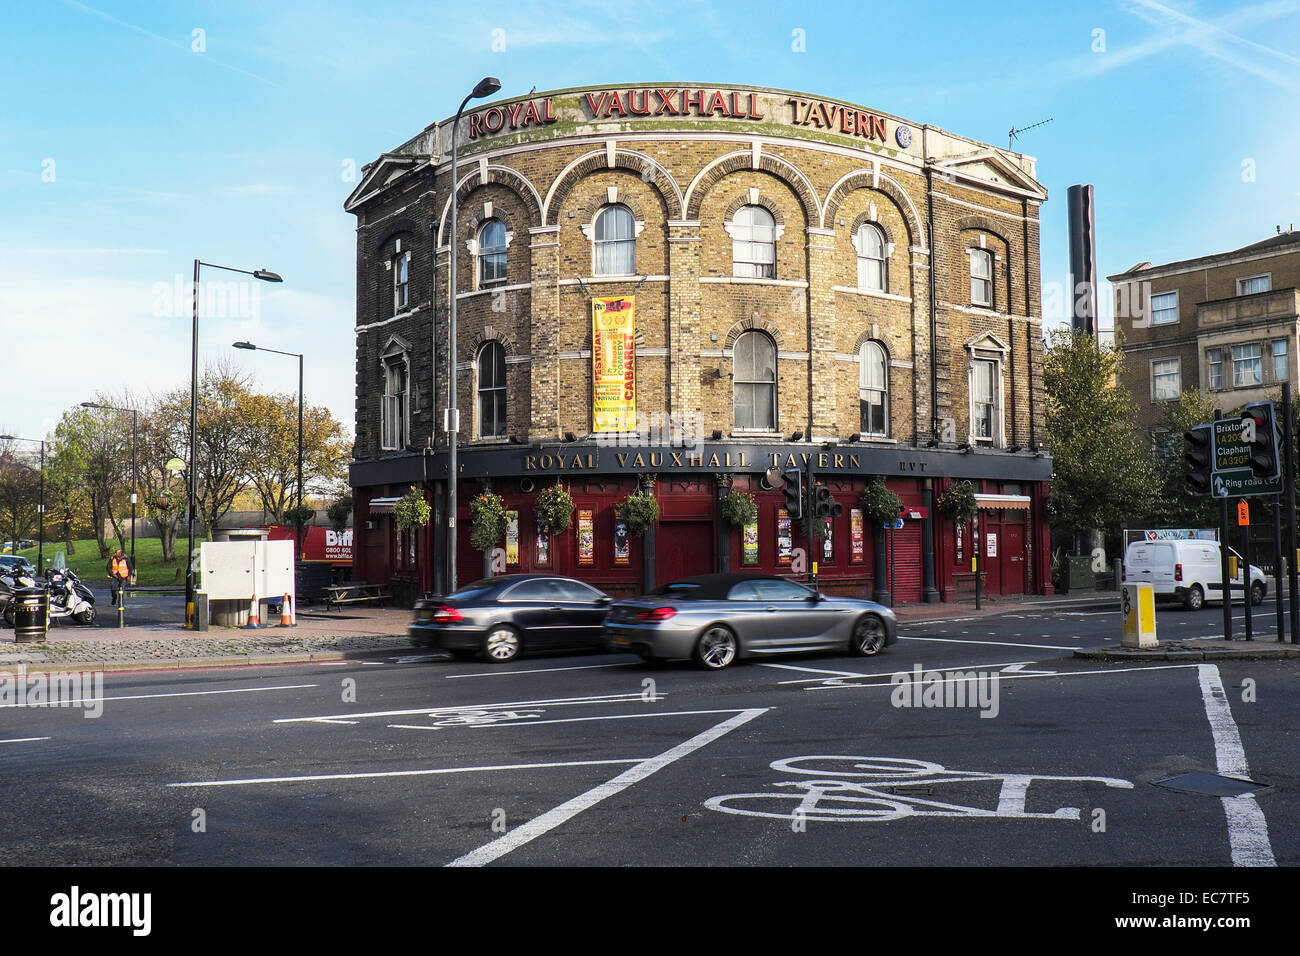 The Royal Vauxhall Tavern in London. - Stock Image